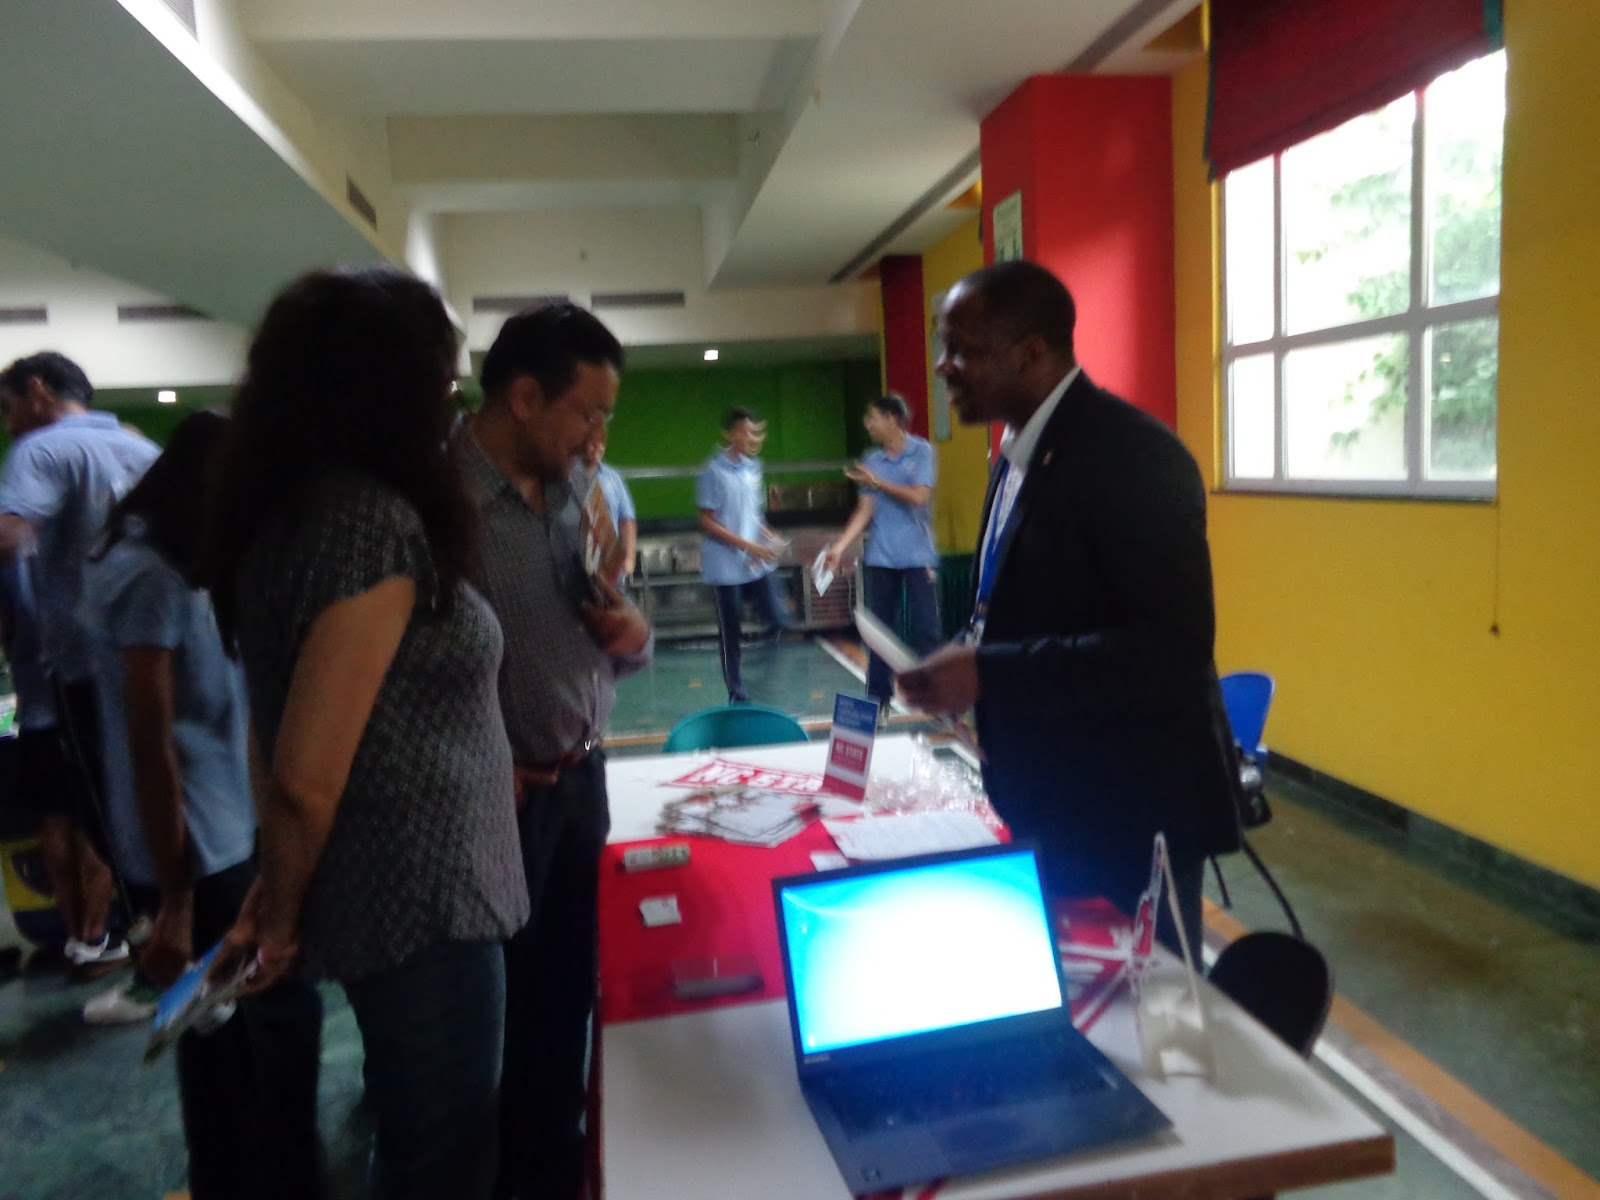 pathways school noida career day at pathways school noida charged information which gave rise to numerous questions the students were led to the university fair in which parents and students interacted